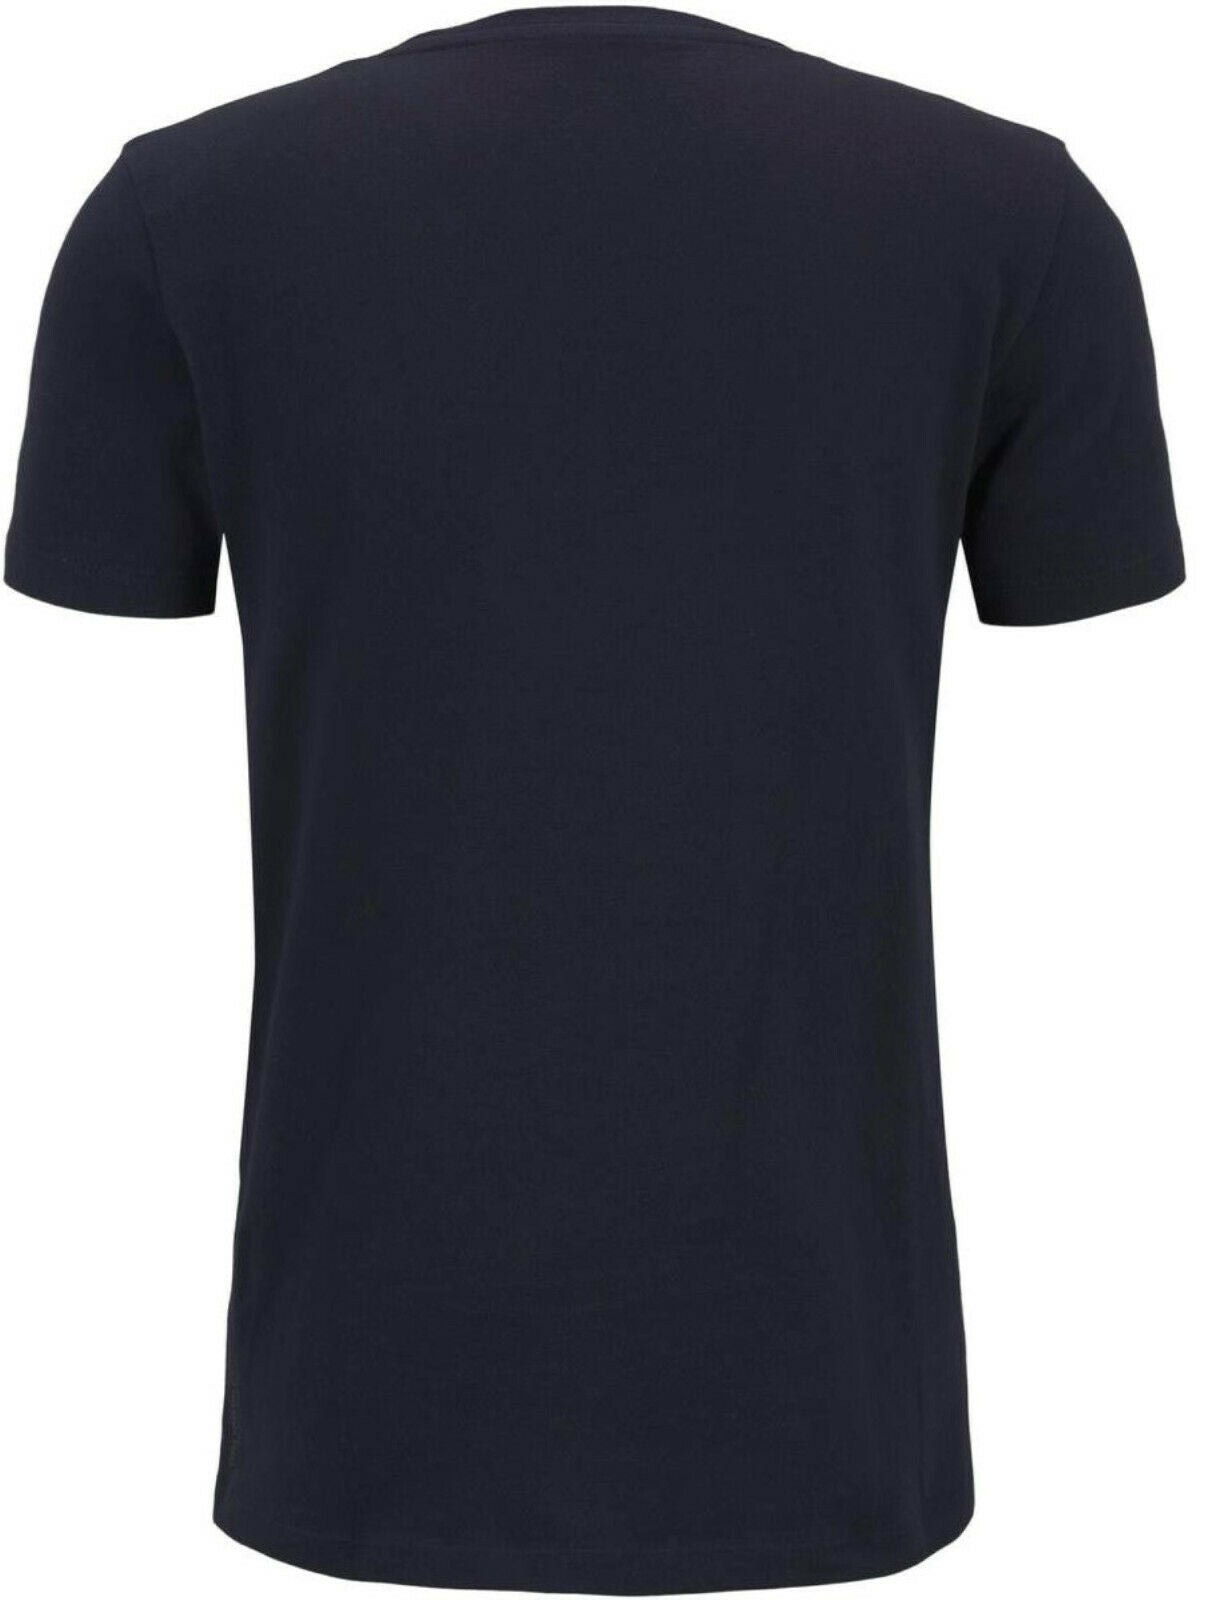 TOM TAILOR DENIM Basic Strukturiertes T-shirt mit Brusttasche